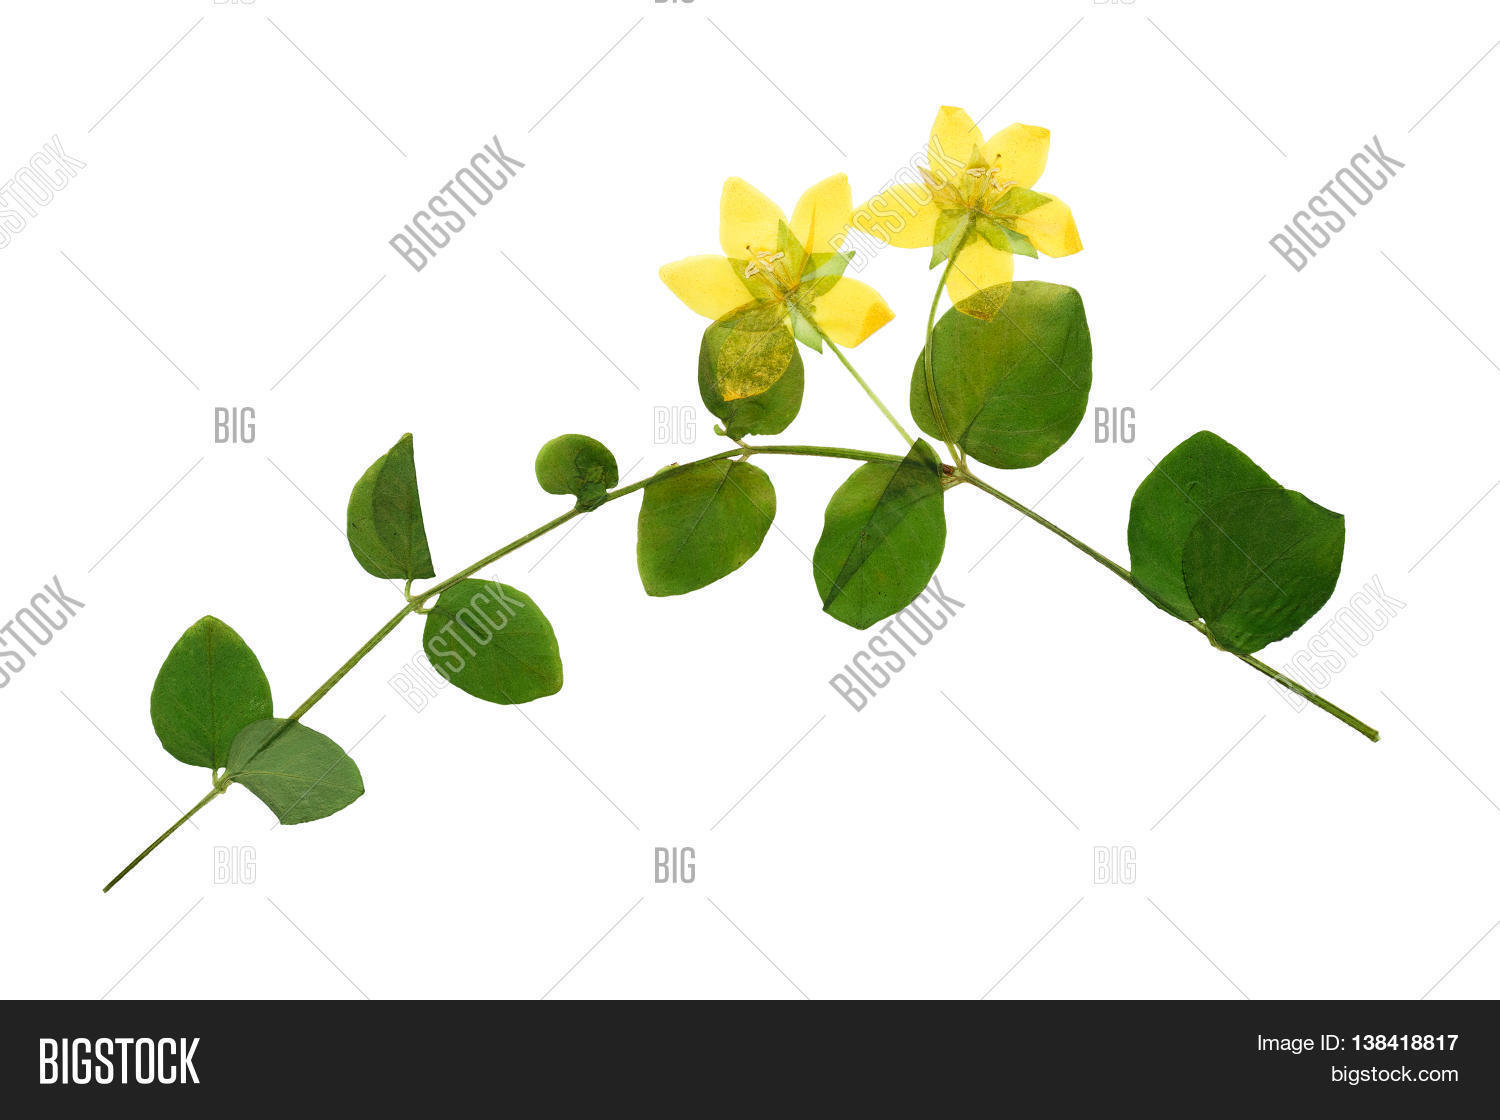 How to scrapbook dried flowers - Pressed And Dried Flowers Of Loosestrife Meadow Or Tea With Green Leaves On Creeping Stem